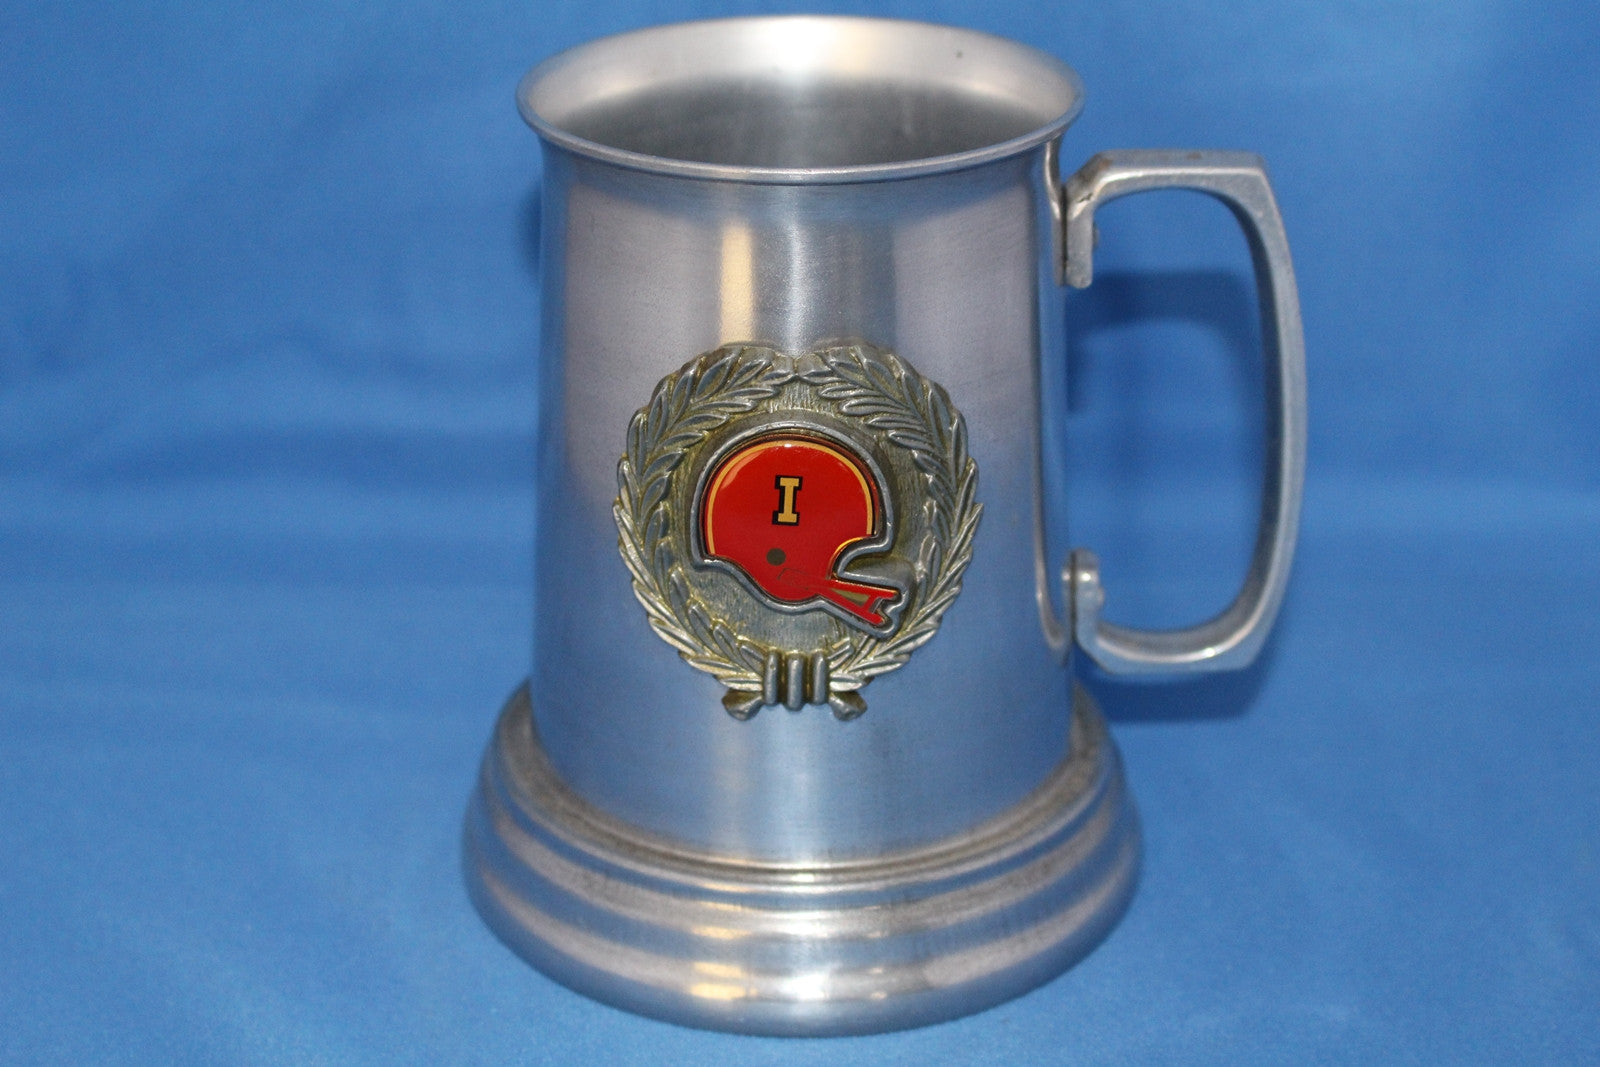 Vintage 1970's Indiana University Football Metal Stein - Vintage Indy Sports